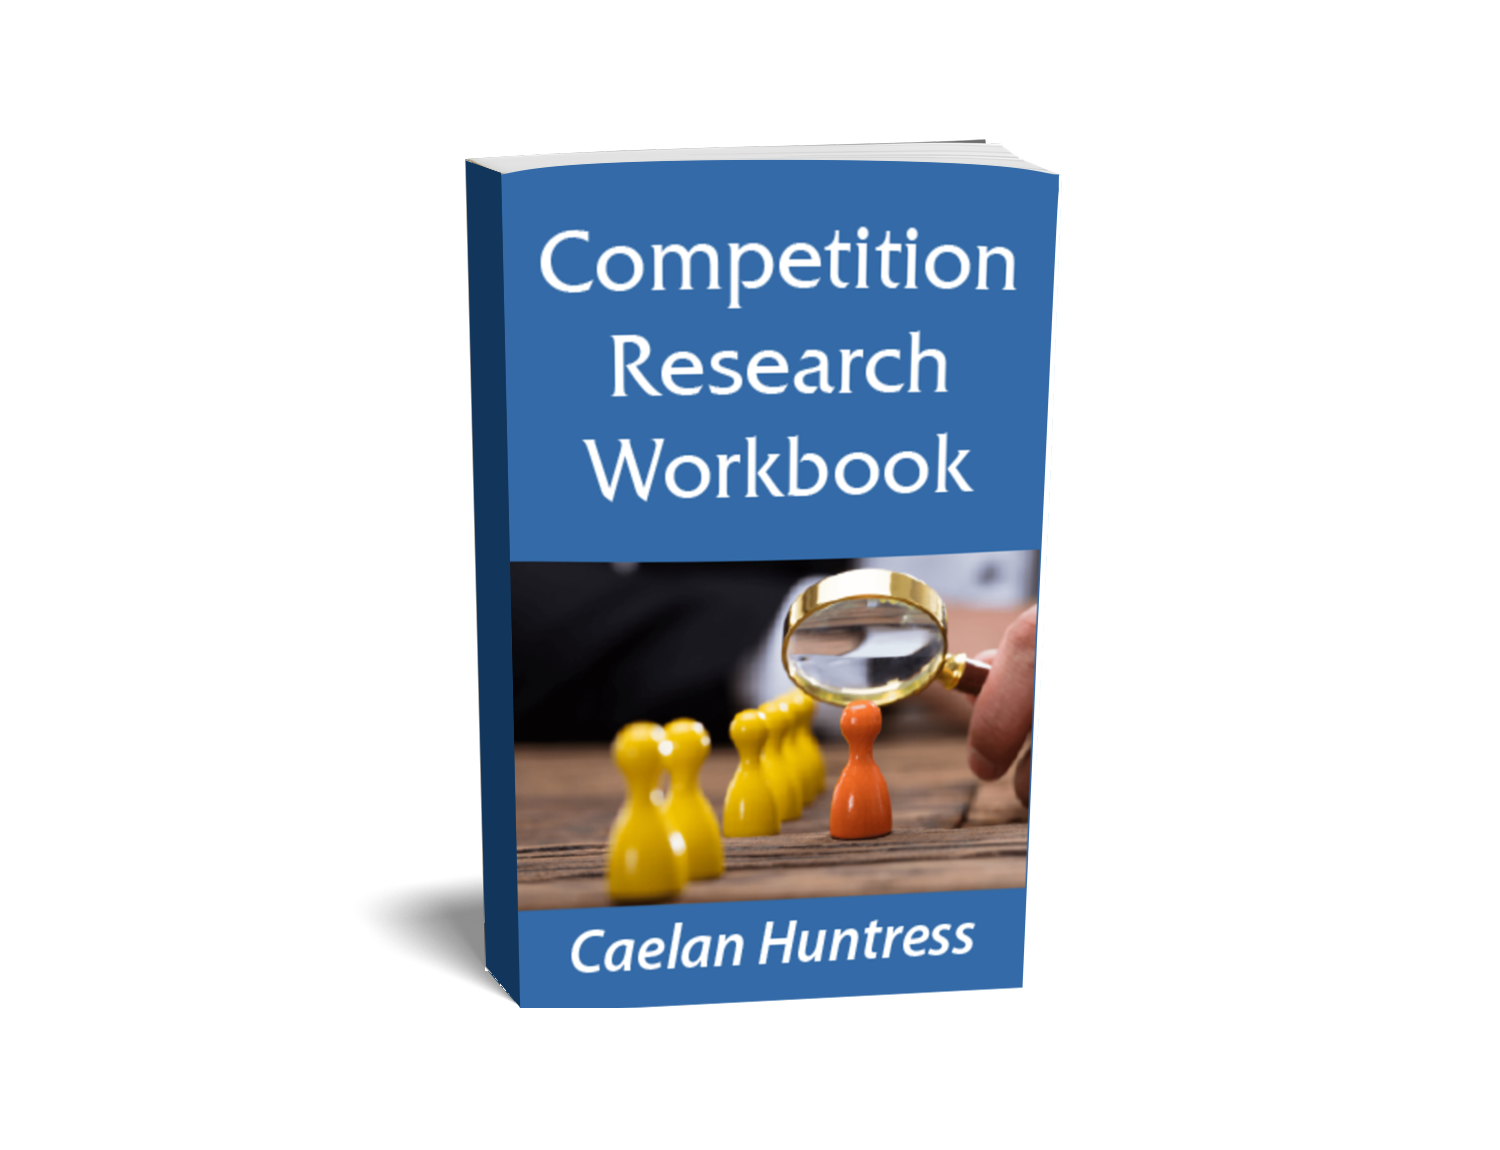 Competition Research